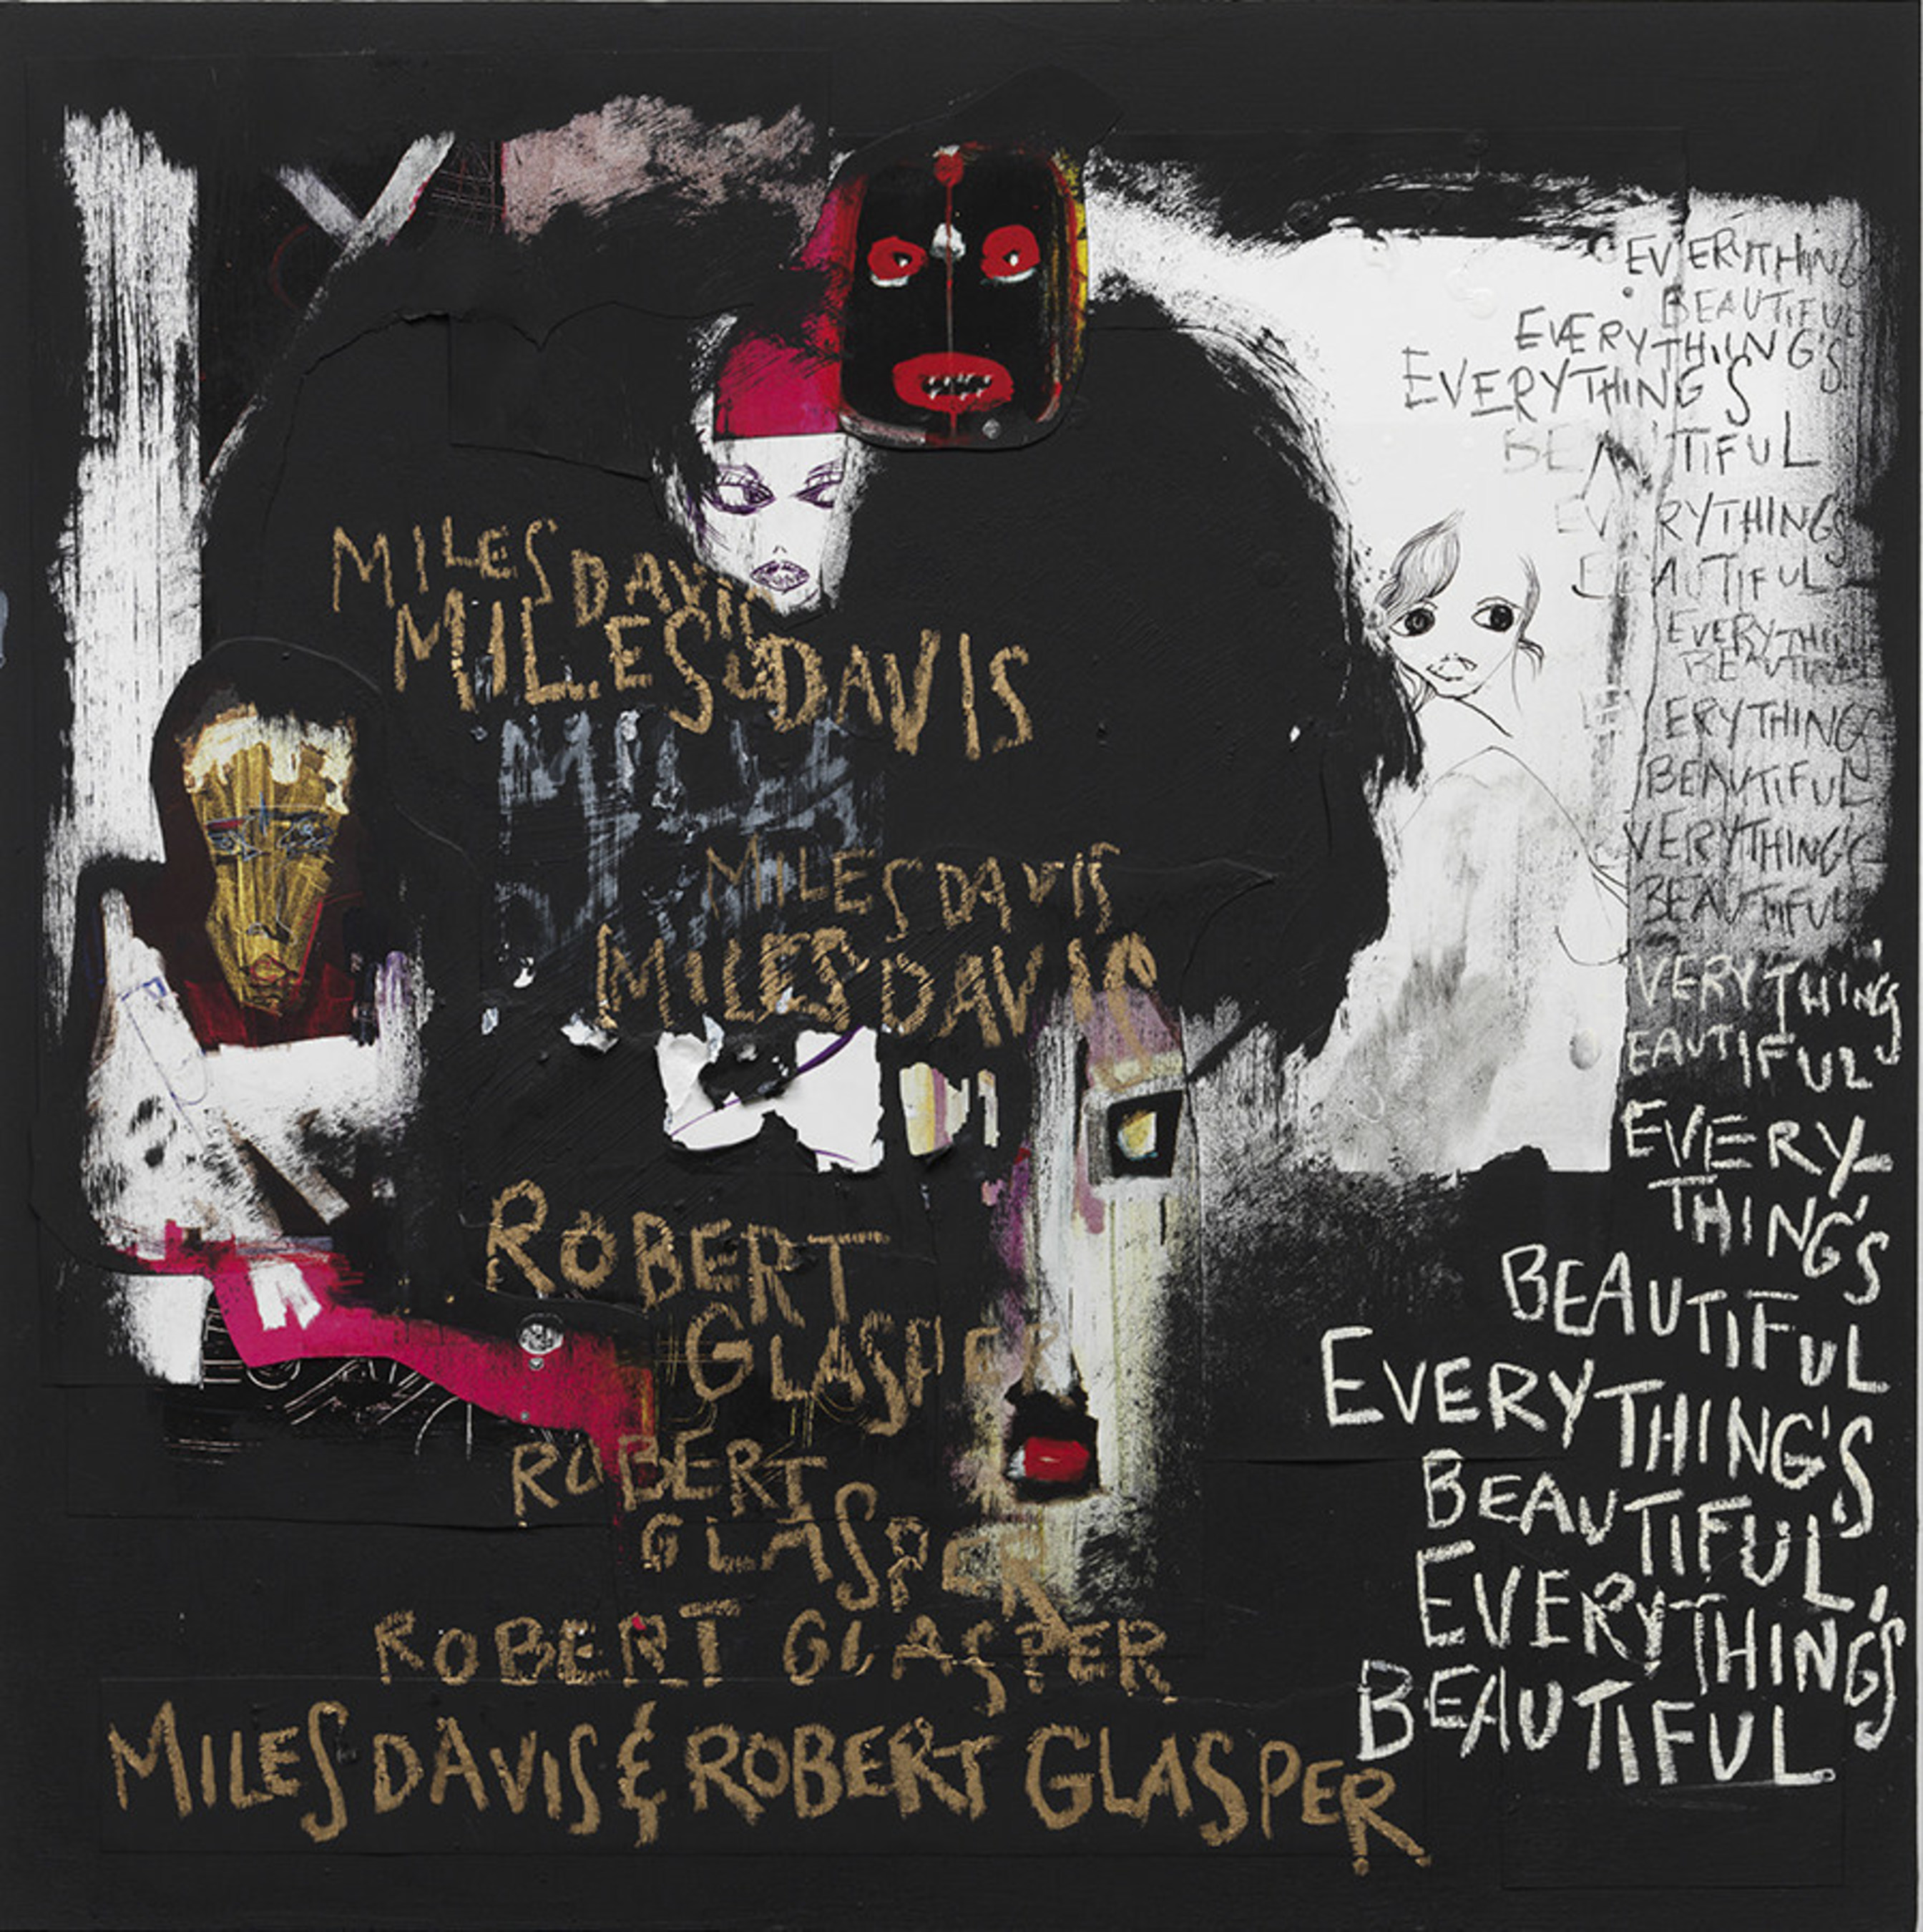 A visionary exploration of the music of Miles Davis, EVERYTHING'S BEAUTIFUL incorporates Davis' original recordings into new collaborative soundscapes and will be available Friday, May 27 (the day after Miles' 90th birthday).